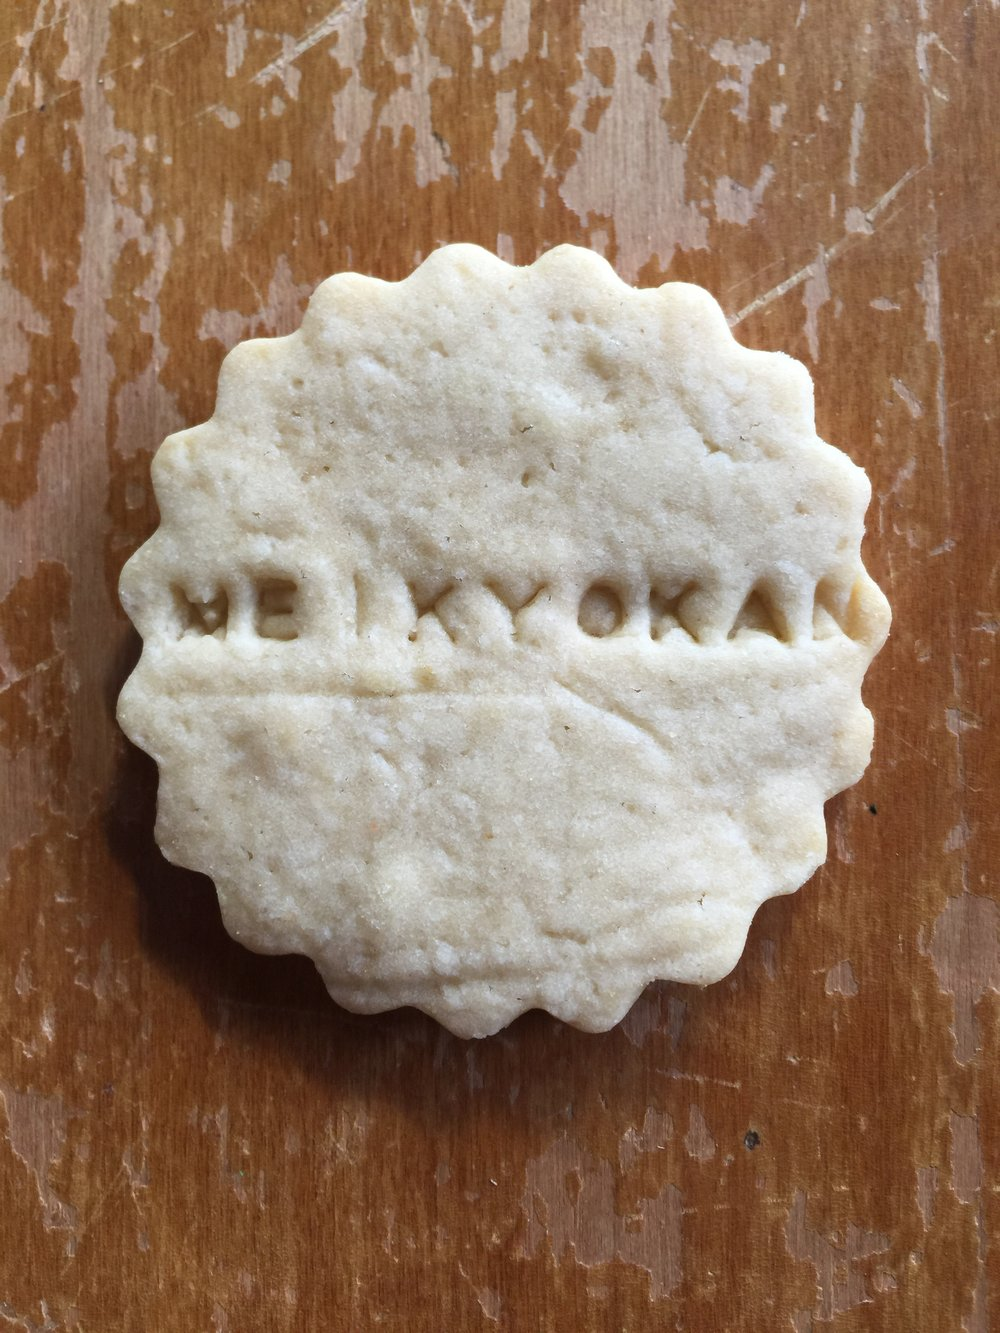 These lovely cookies were made by Kyoko.